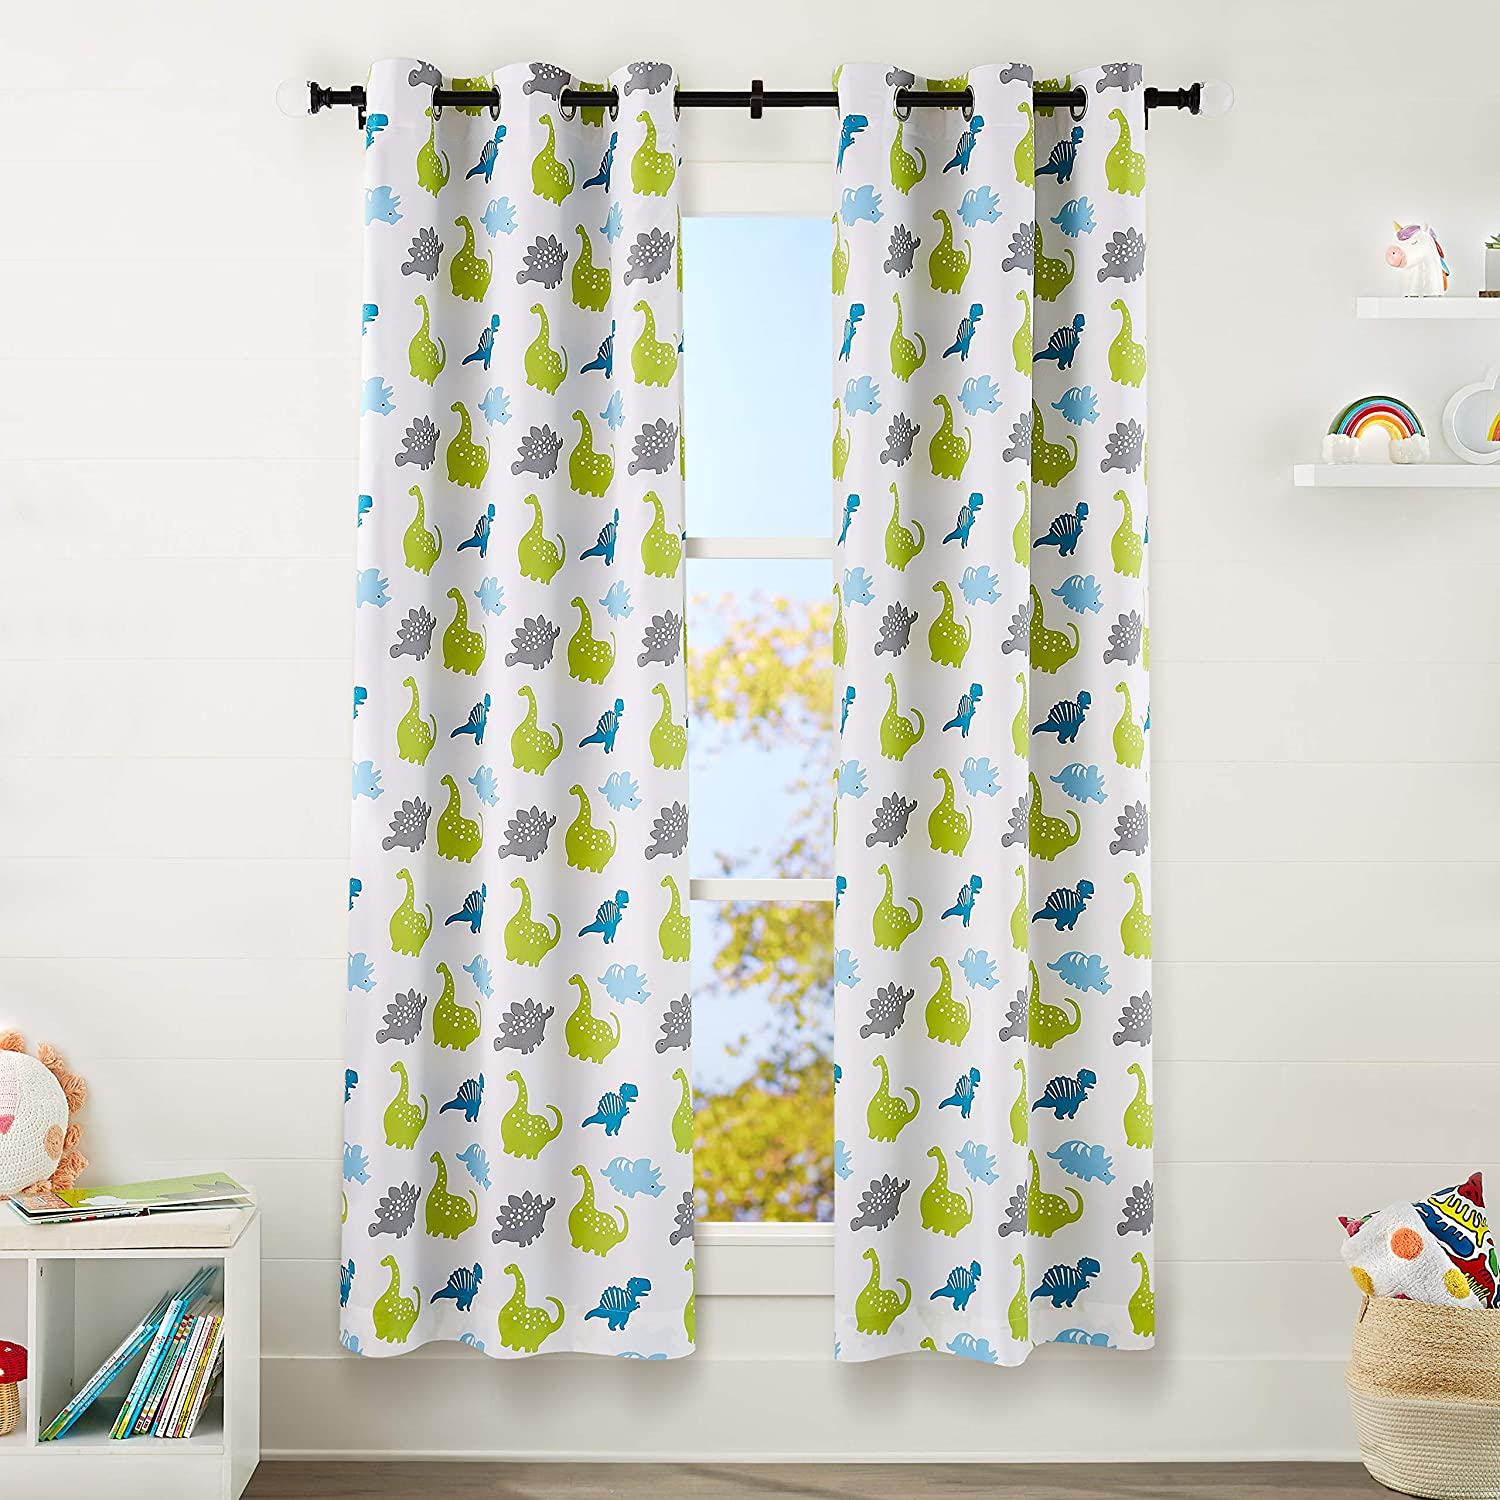 "AmazonBasics Kids Room Darkening Blackout Window Curtain Set with Grommets - 42"" x 84"", Dinosaur White Ground"